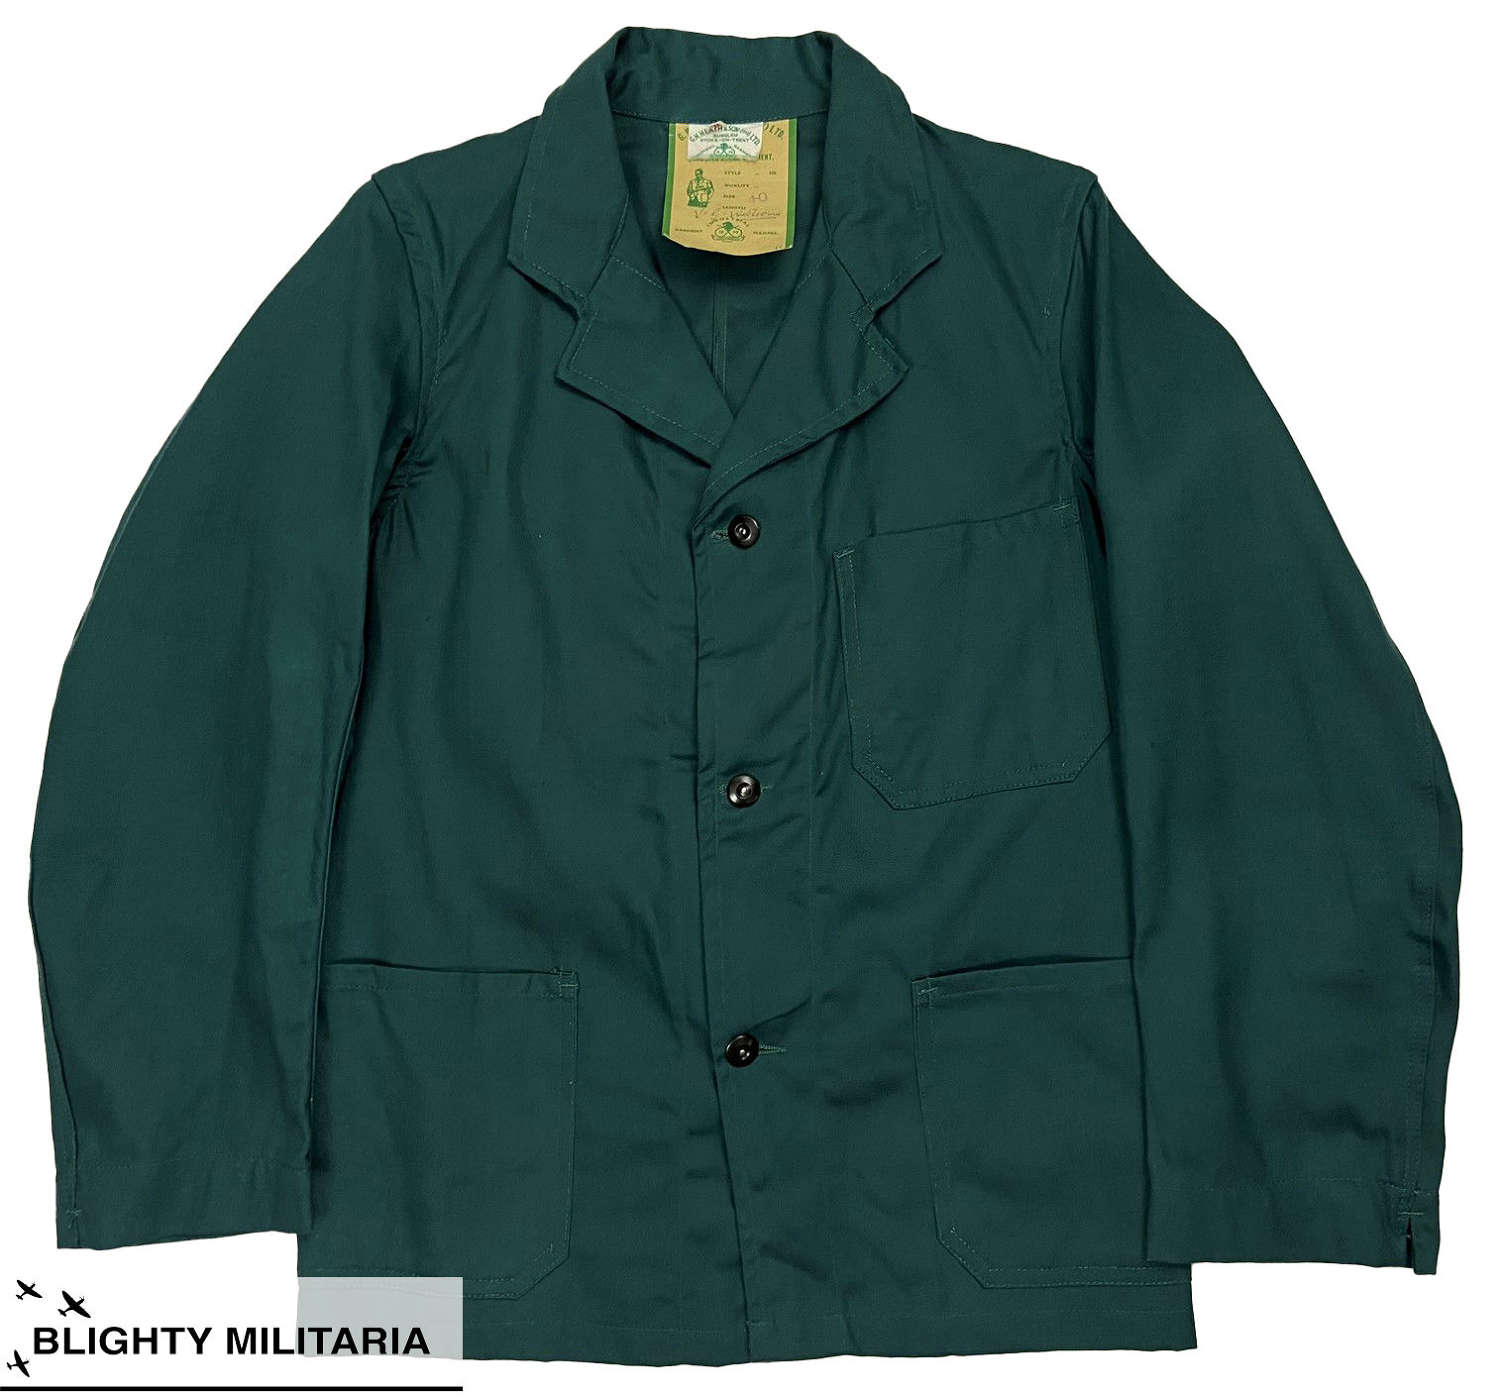 Incredible 1950s Teal Coloured Engineer Work Jacket - Size 40